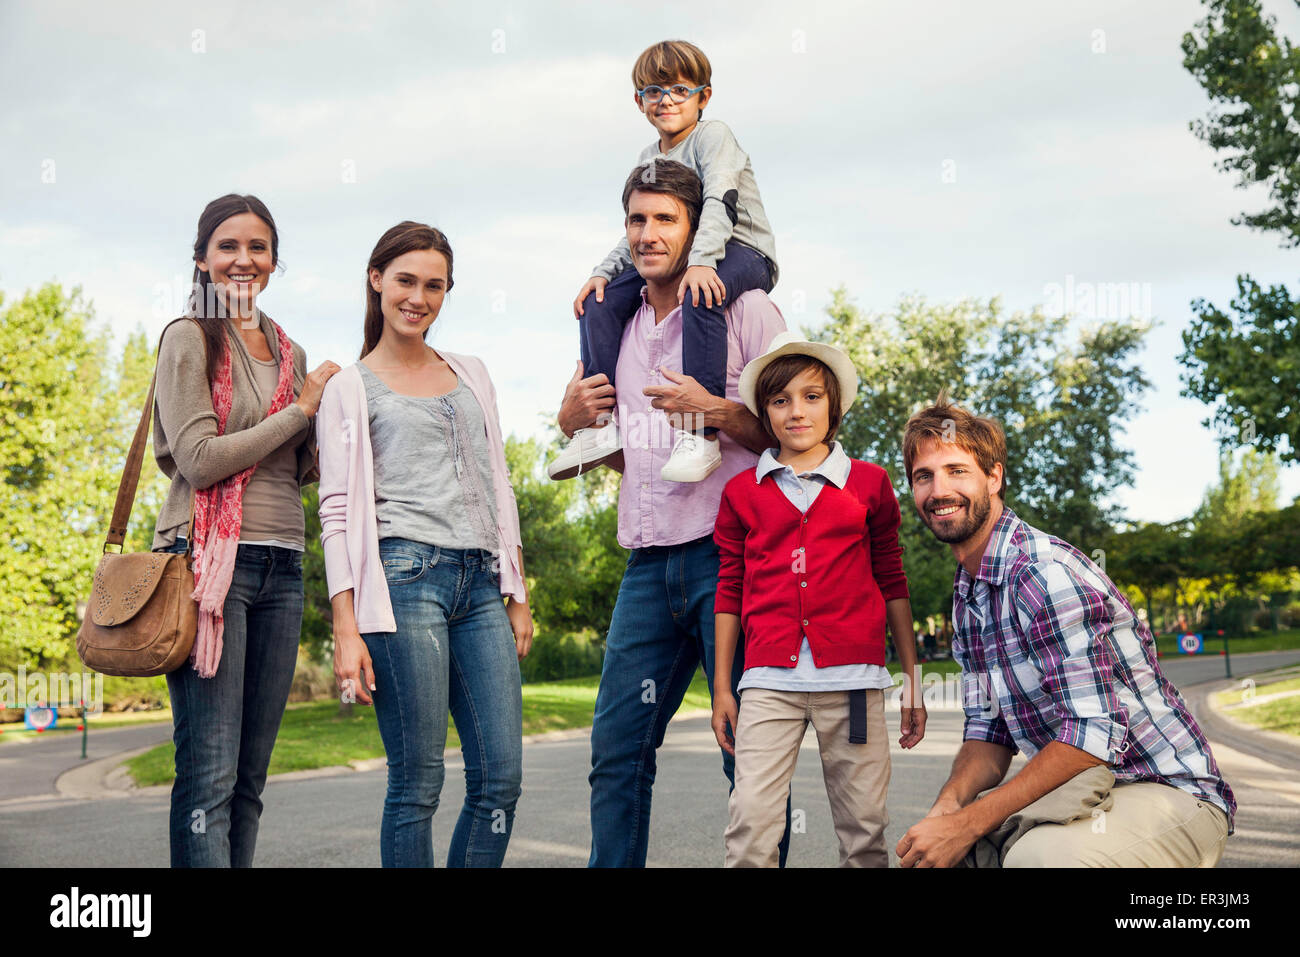 Family posing for group portrait outdoors - Stock Image